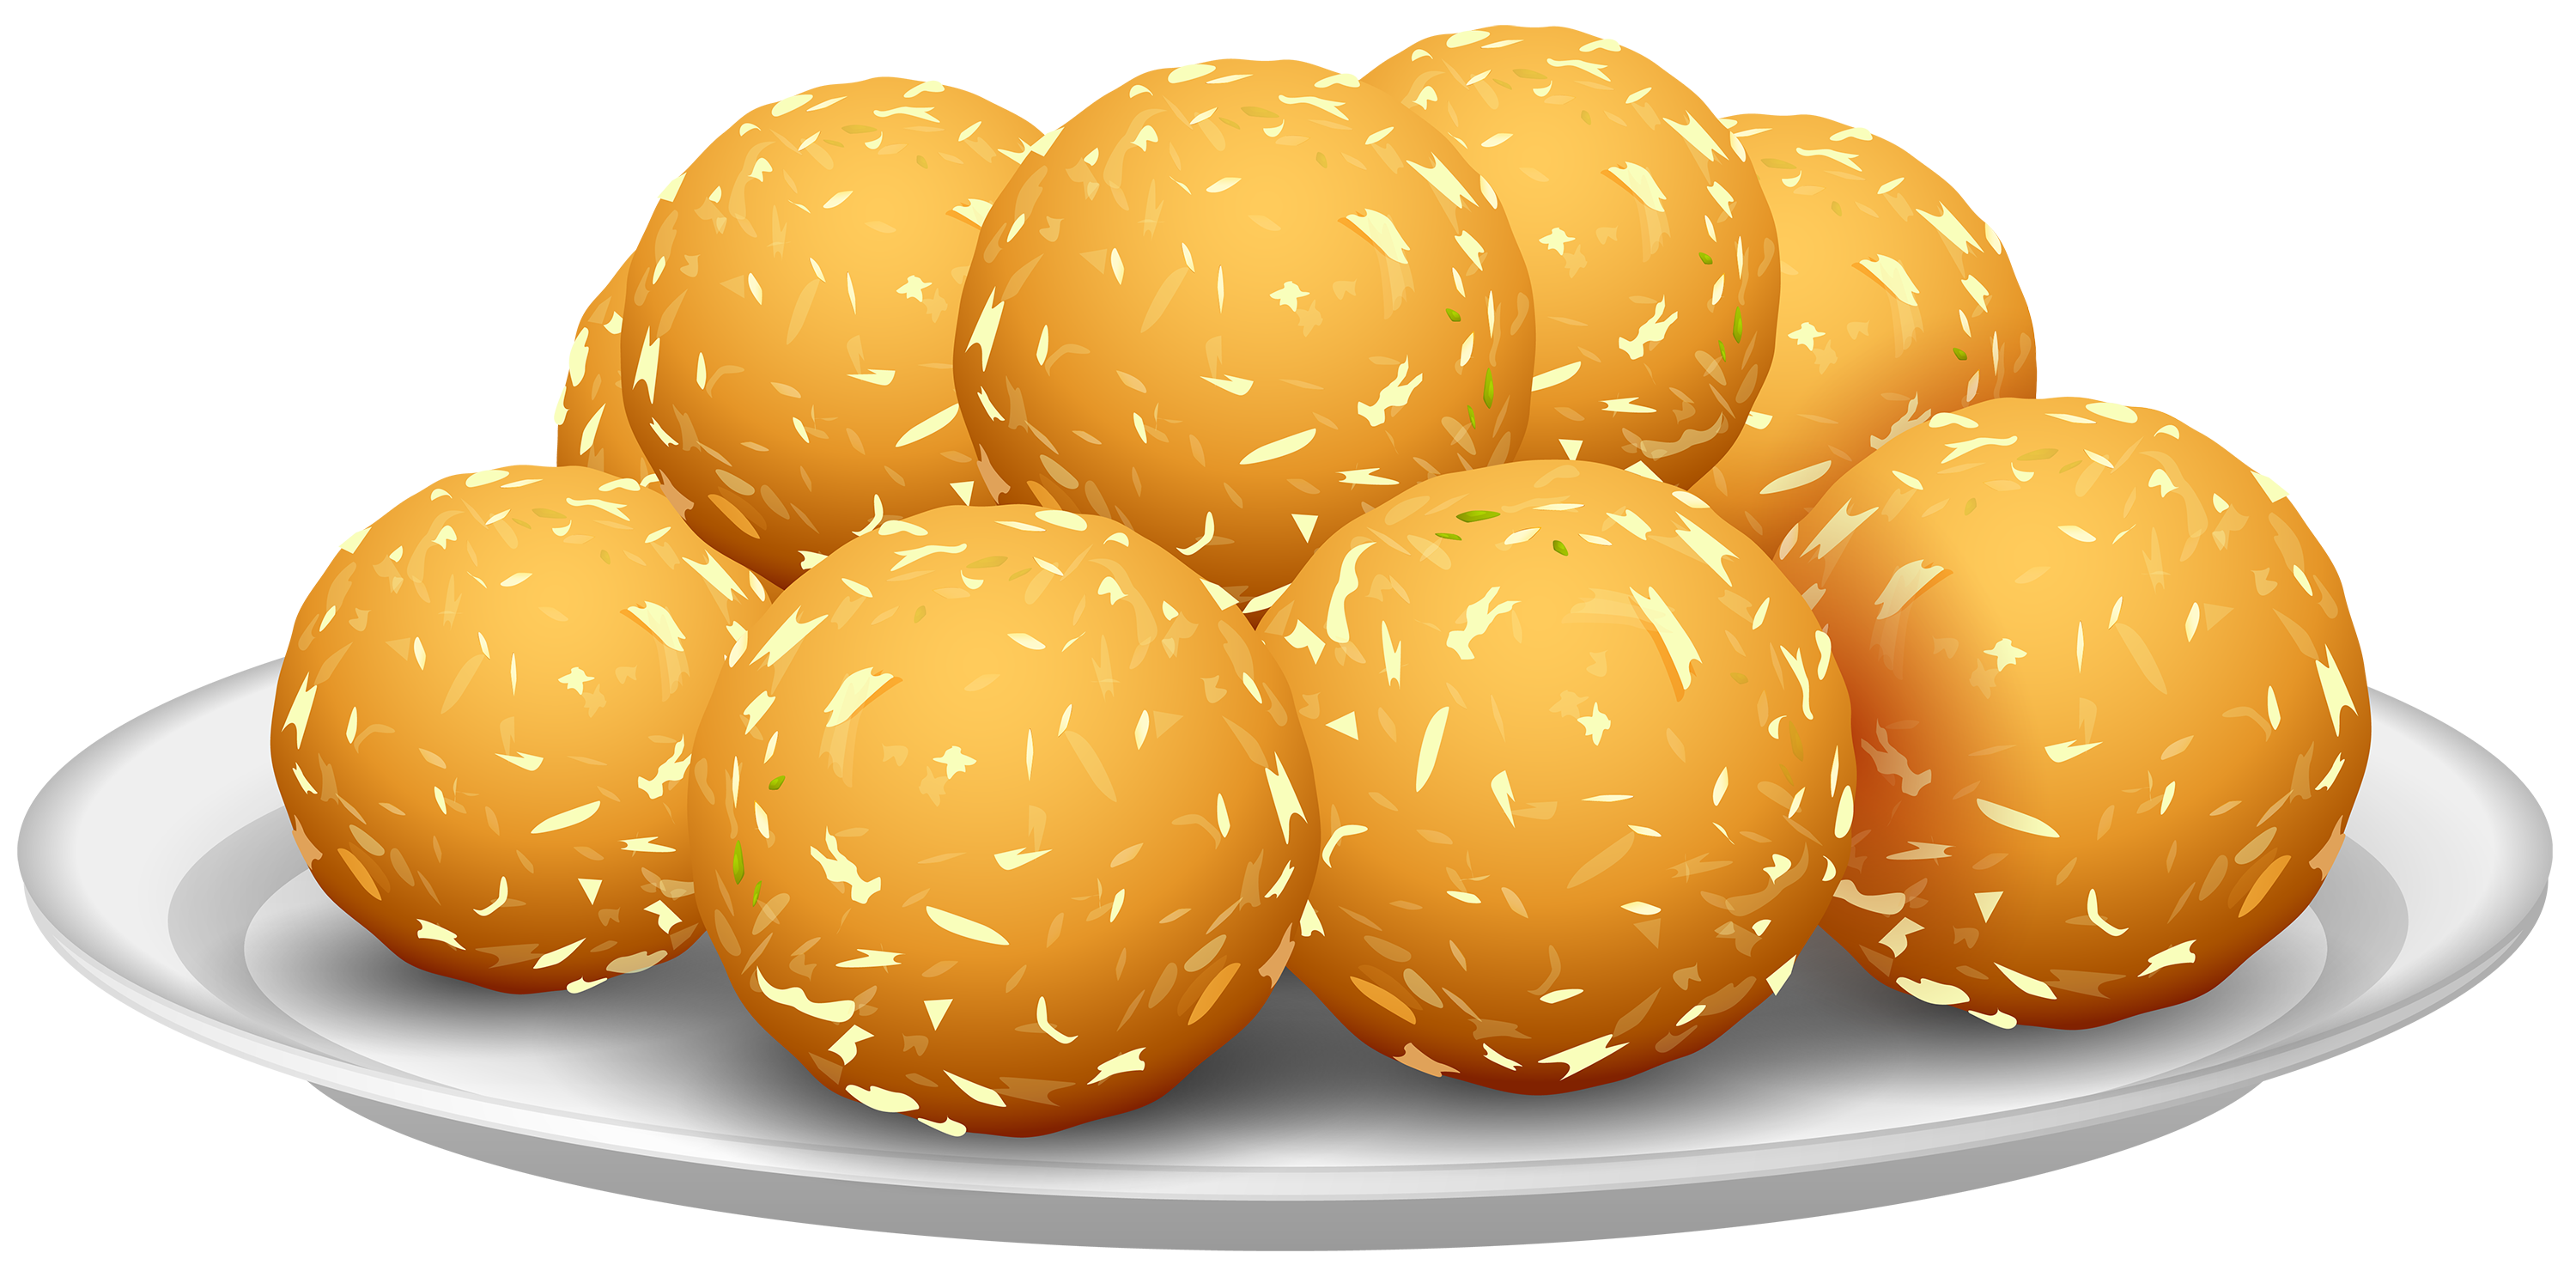 Food clipart ball. Potato croquettes png best